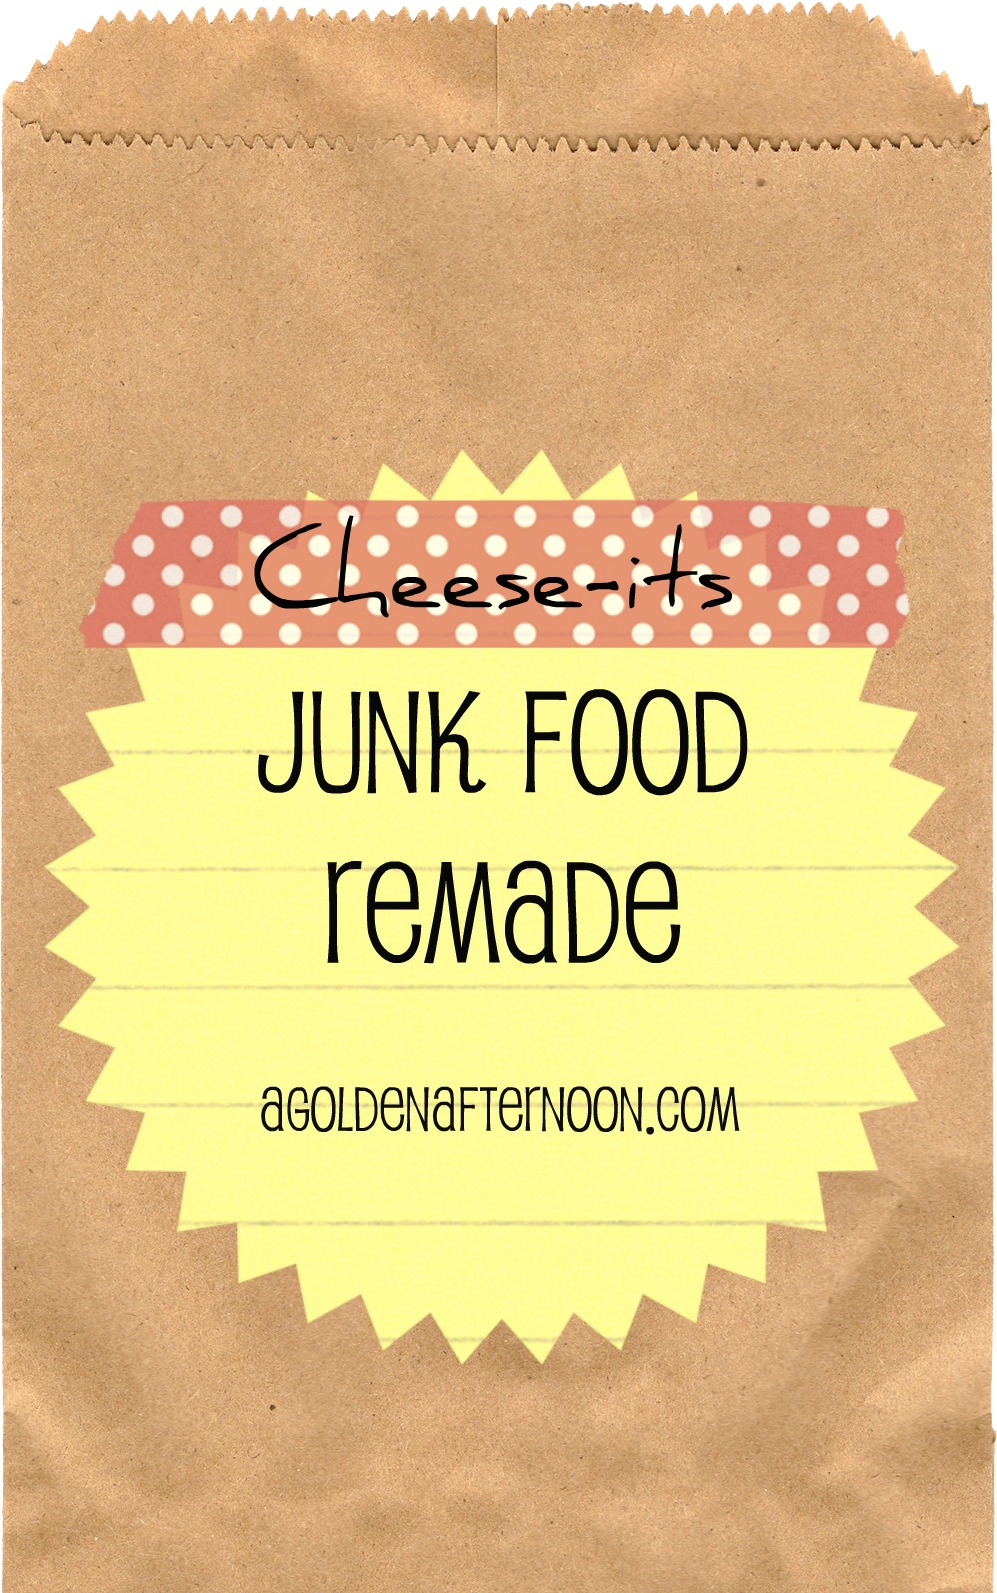 Junkfood Remade: Cheese-its - A Golden Afternoon: Simplified Home Living